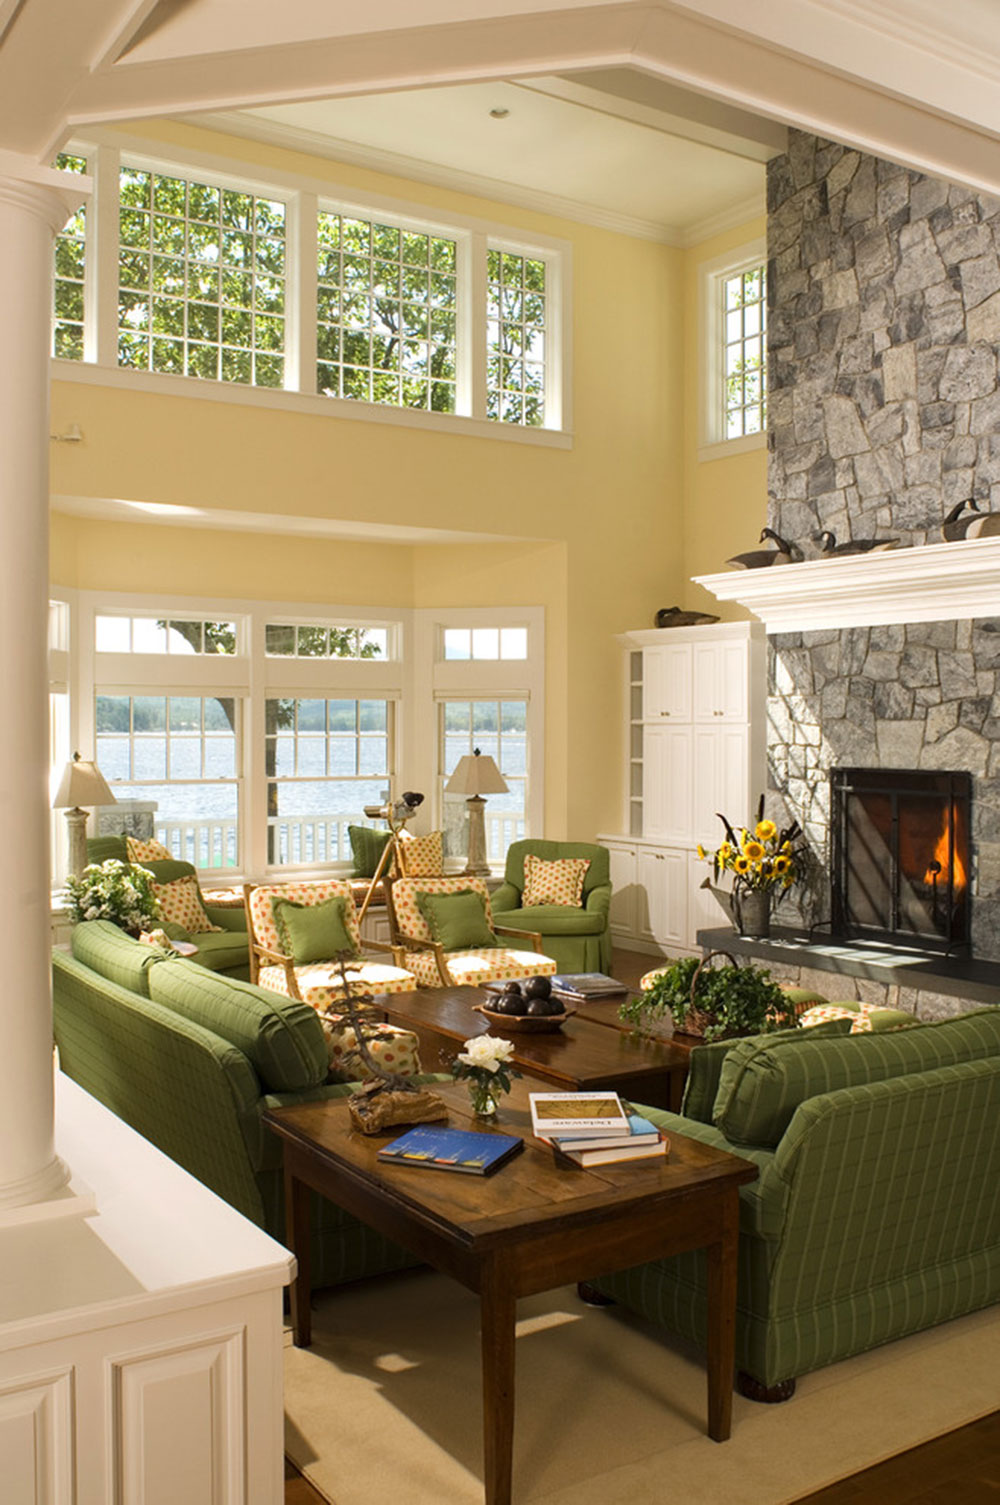 Brilliant shades of green for your living room4 Brilliant shades of green for your living room